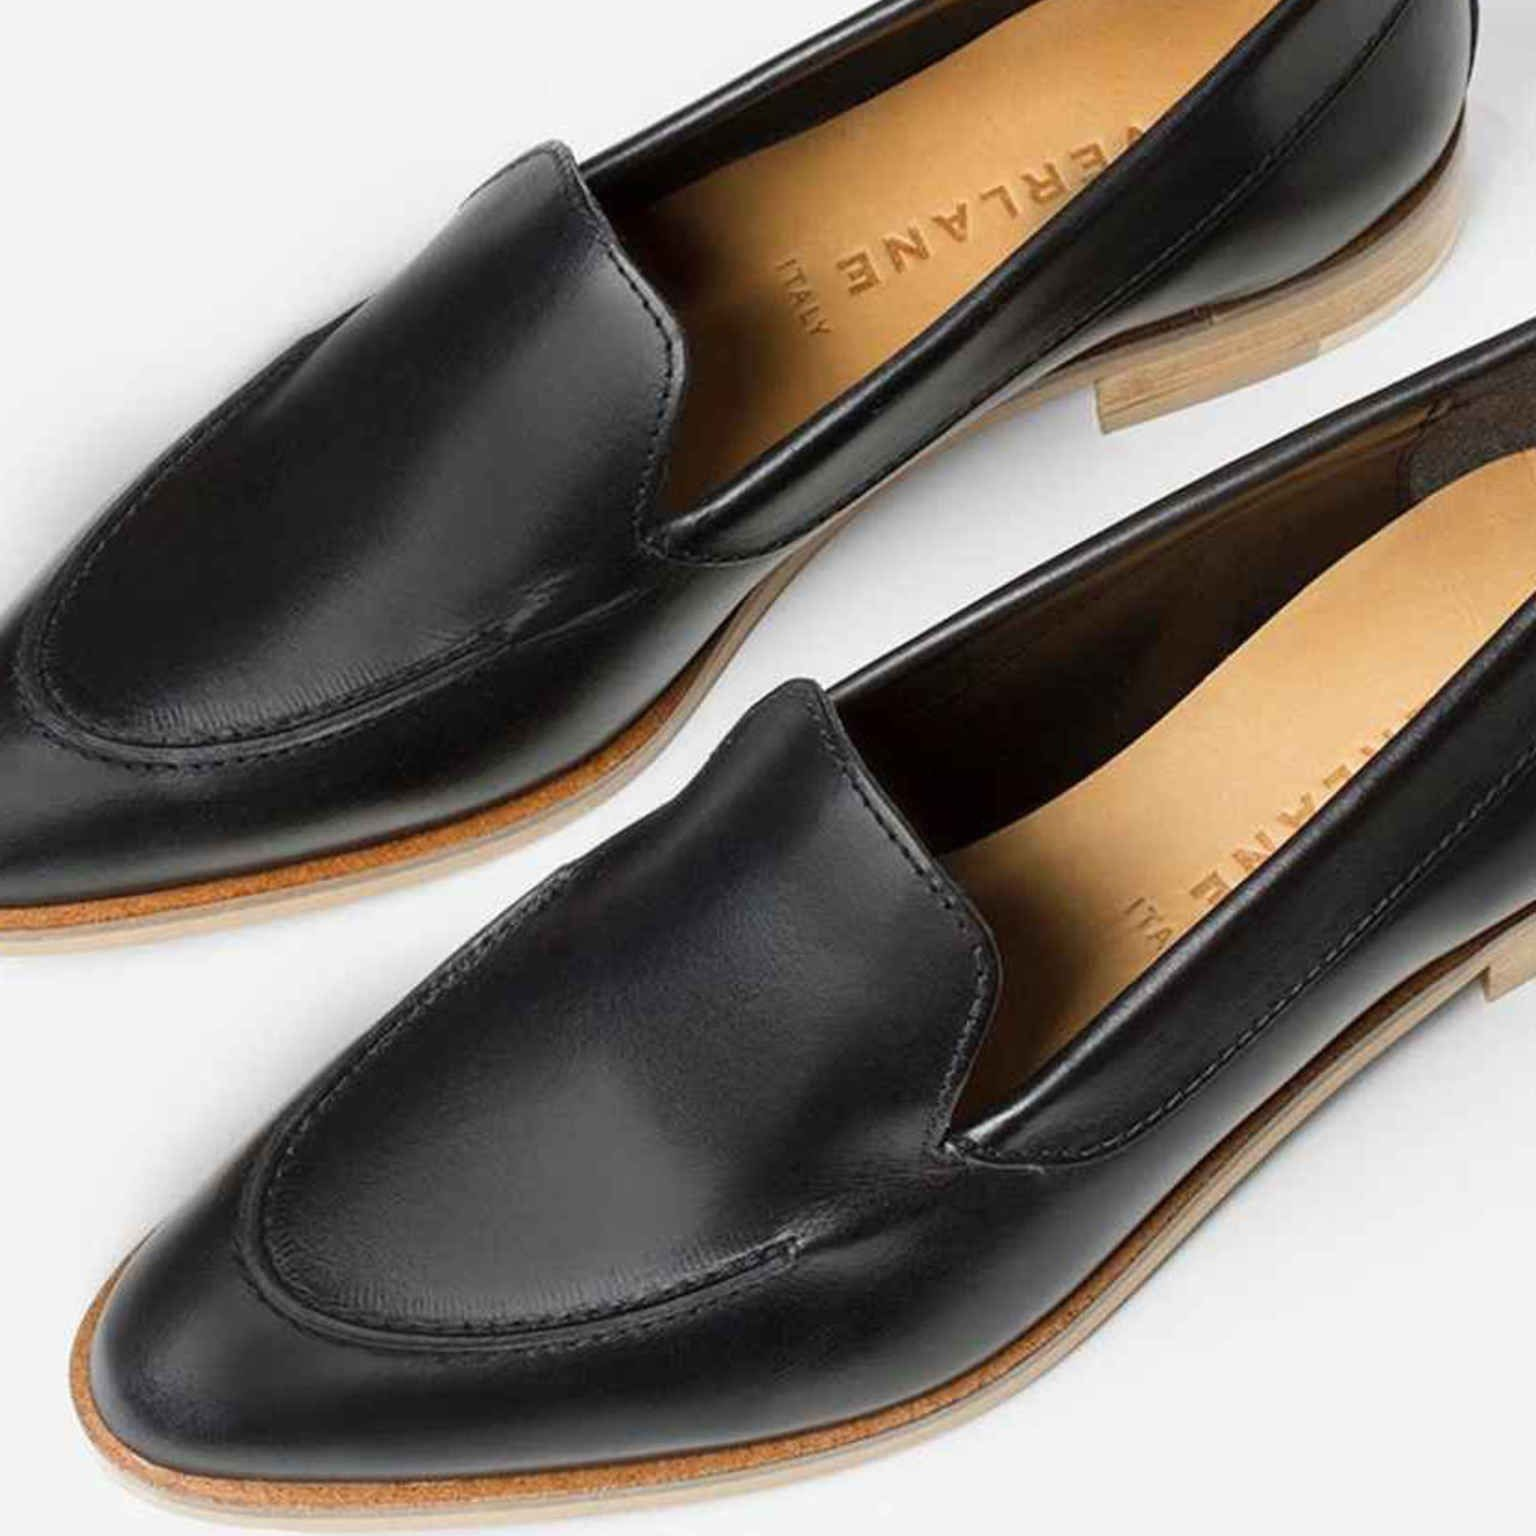 12 Fall Perfect Loafers Dress Shoes Men Everlane Shoes Loafers For Women [ 1536 x 1536 Pixel ]